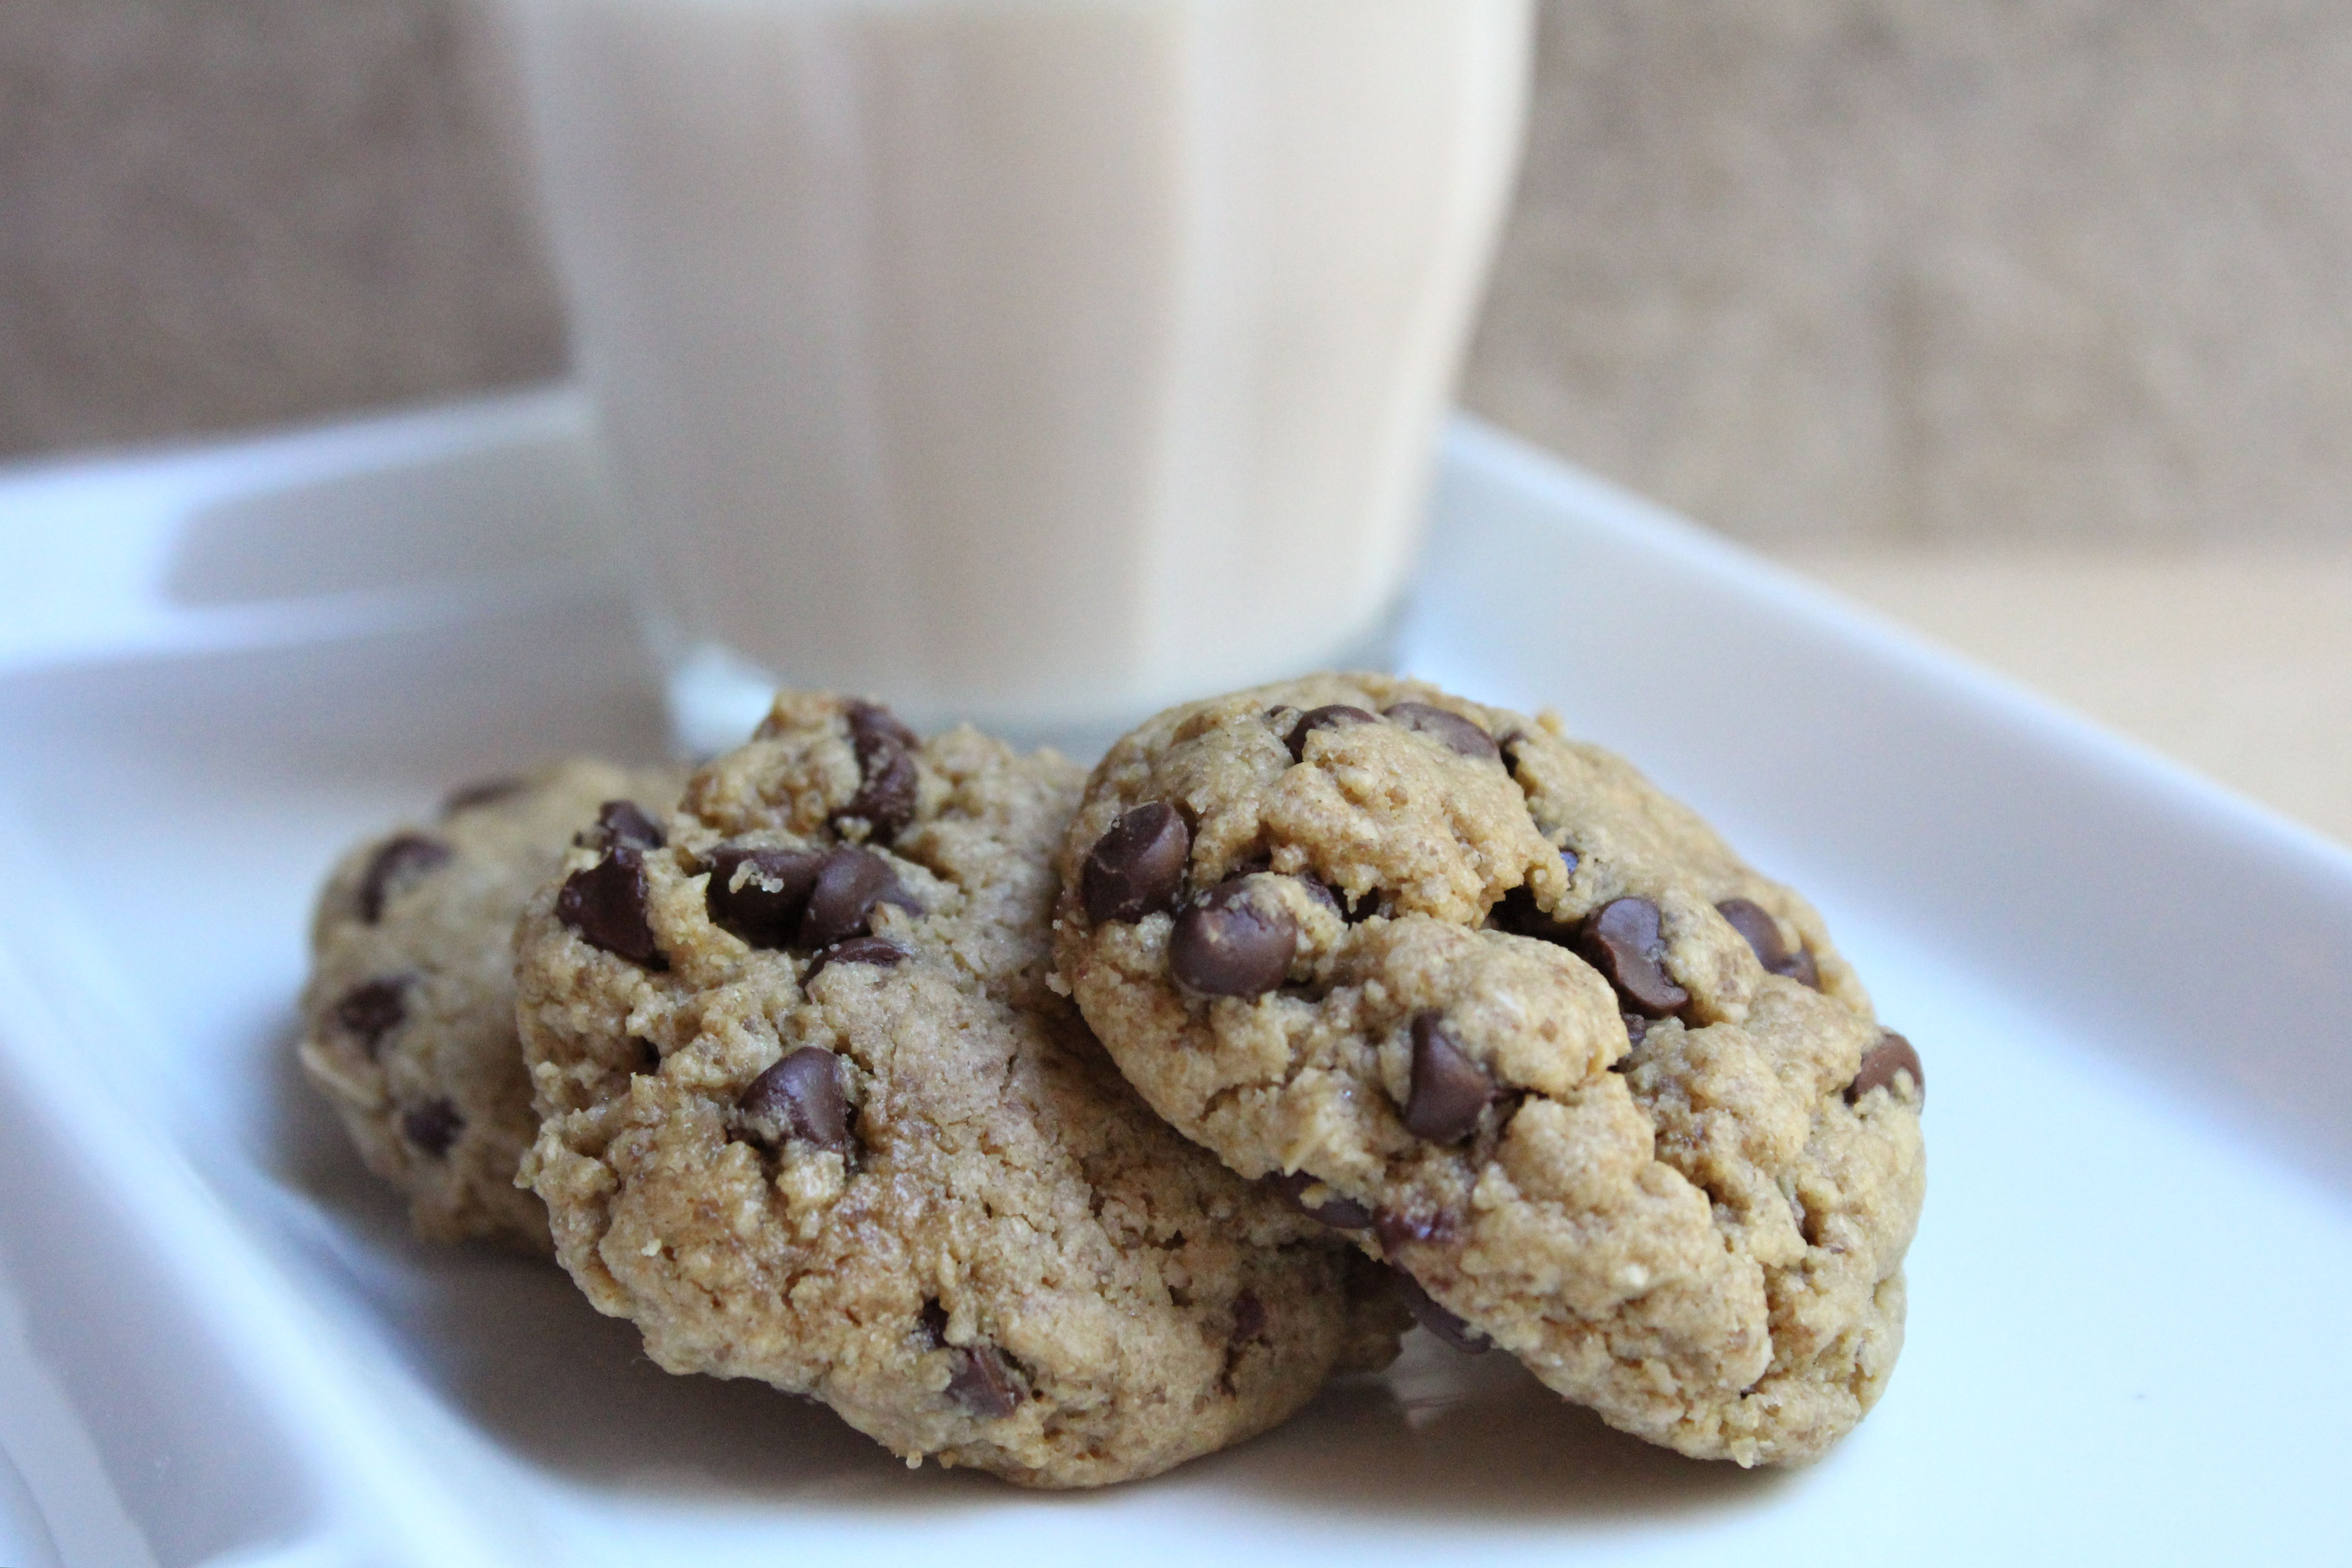 Chocolate chip sunbutter cookies with a glass of milk